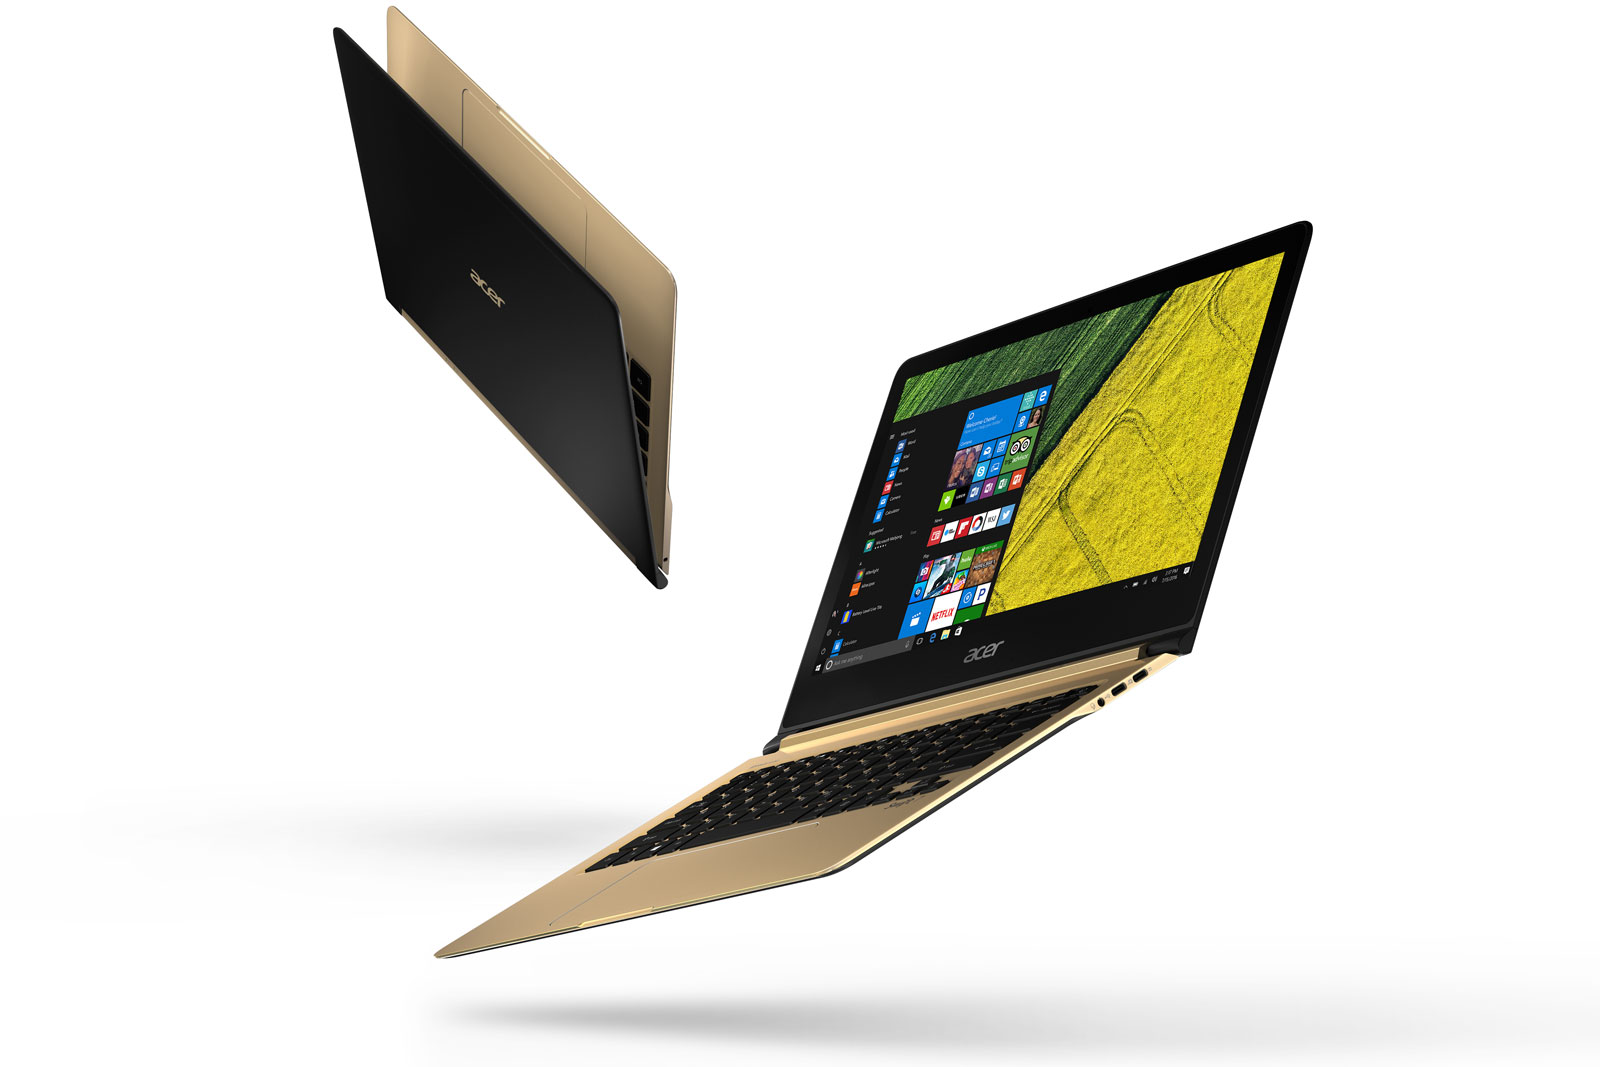 The Acer Swift 7, free falling.